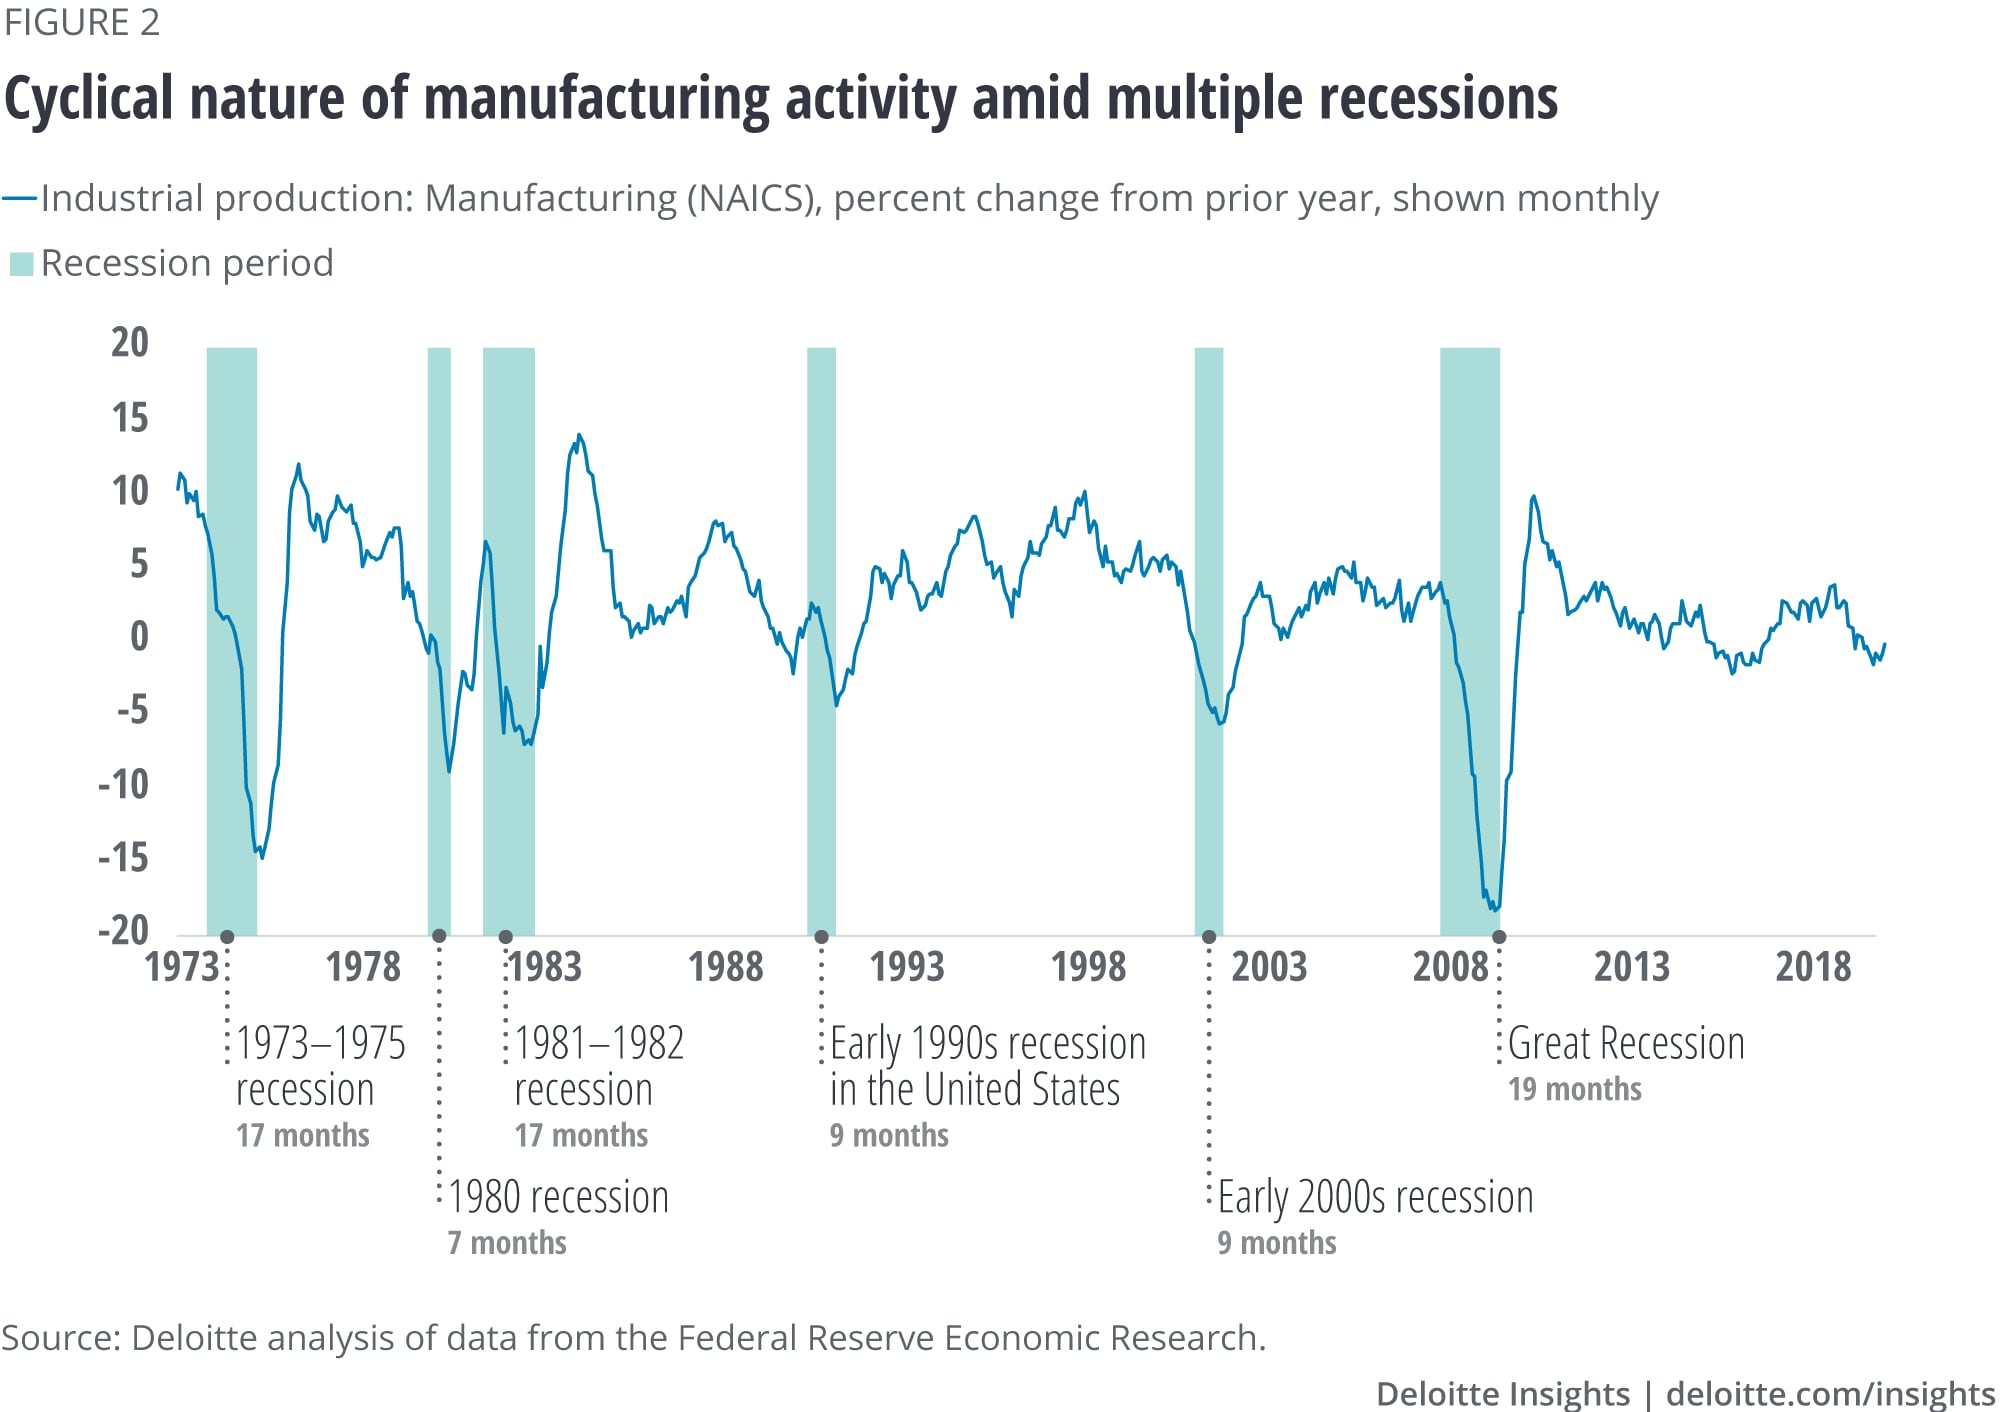 Cyclical nature of manufacturing activity amid multiple recessions